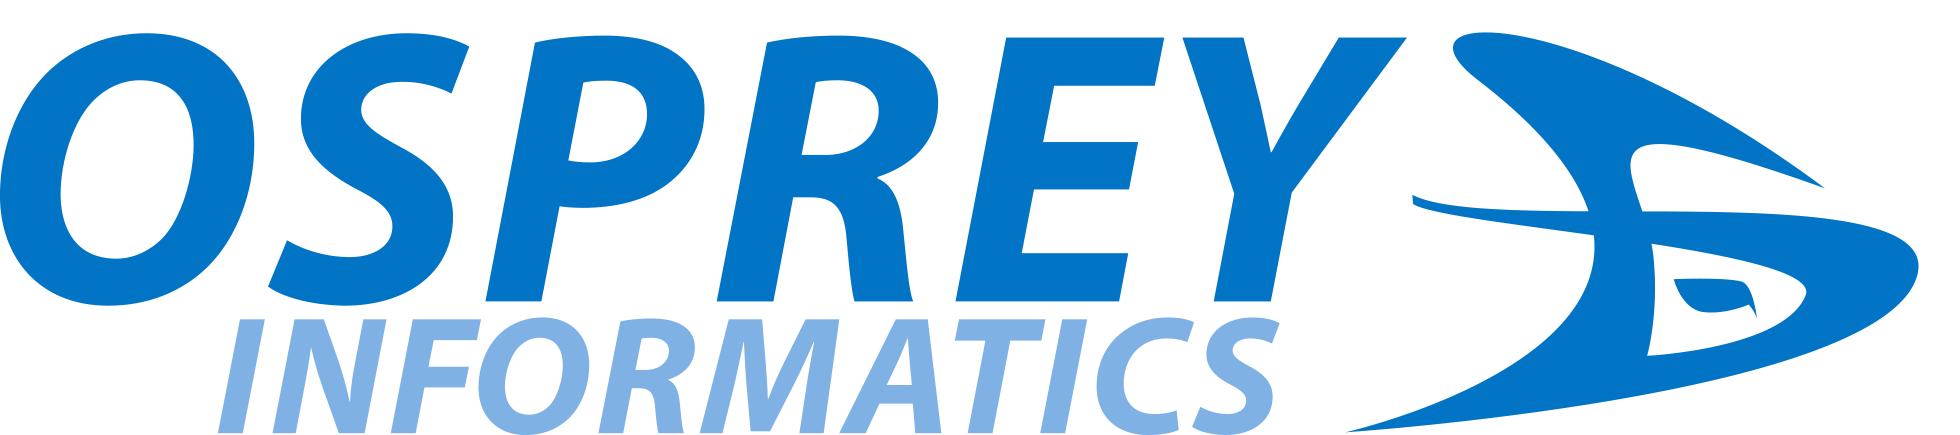 Osprey Informatics names Mark Slaughter as Chief Executive Officer